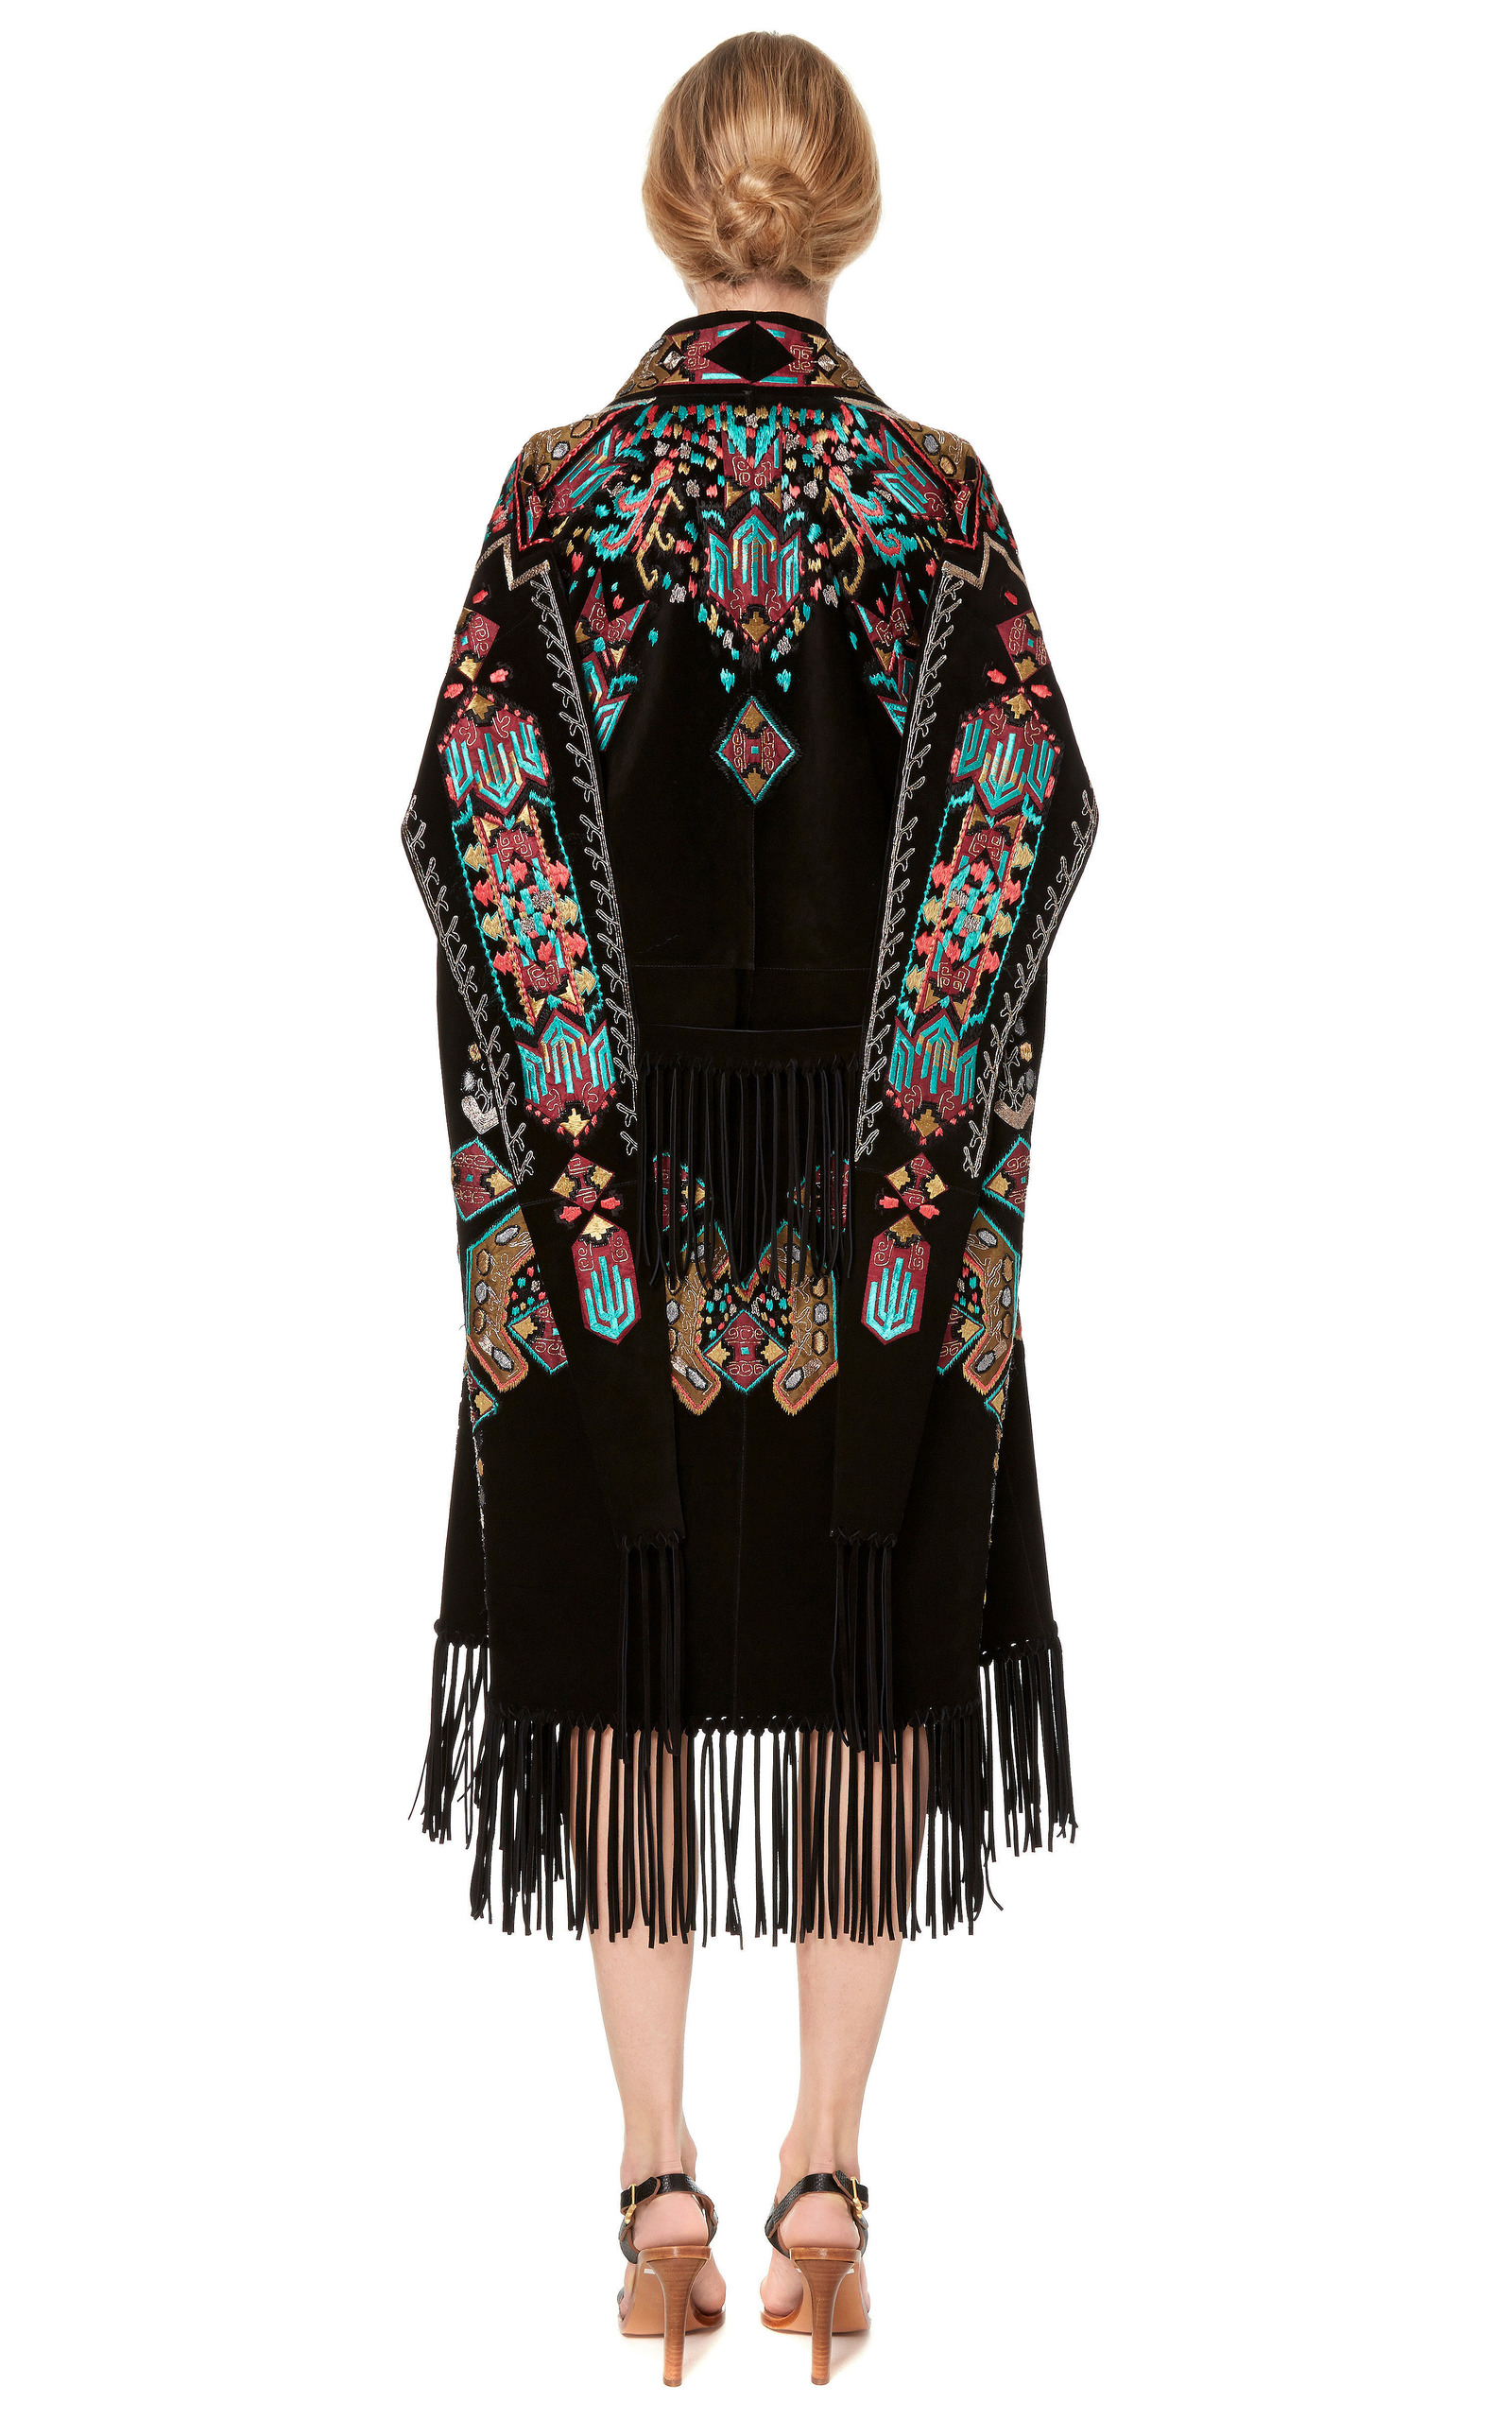 Suede Knee Length Cape With Fringe And Embroidery By